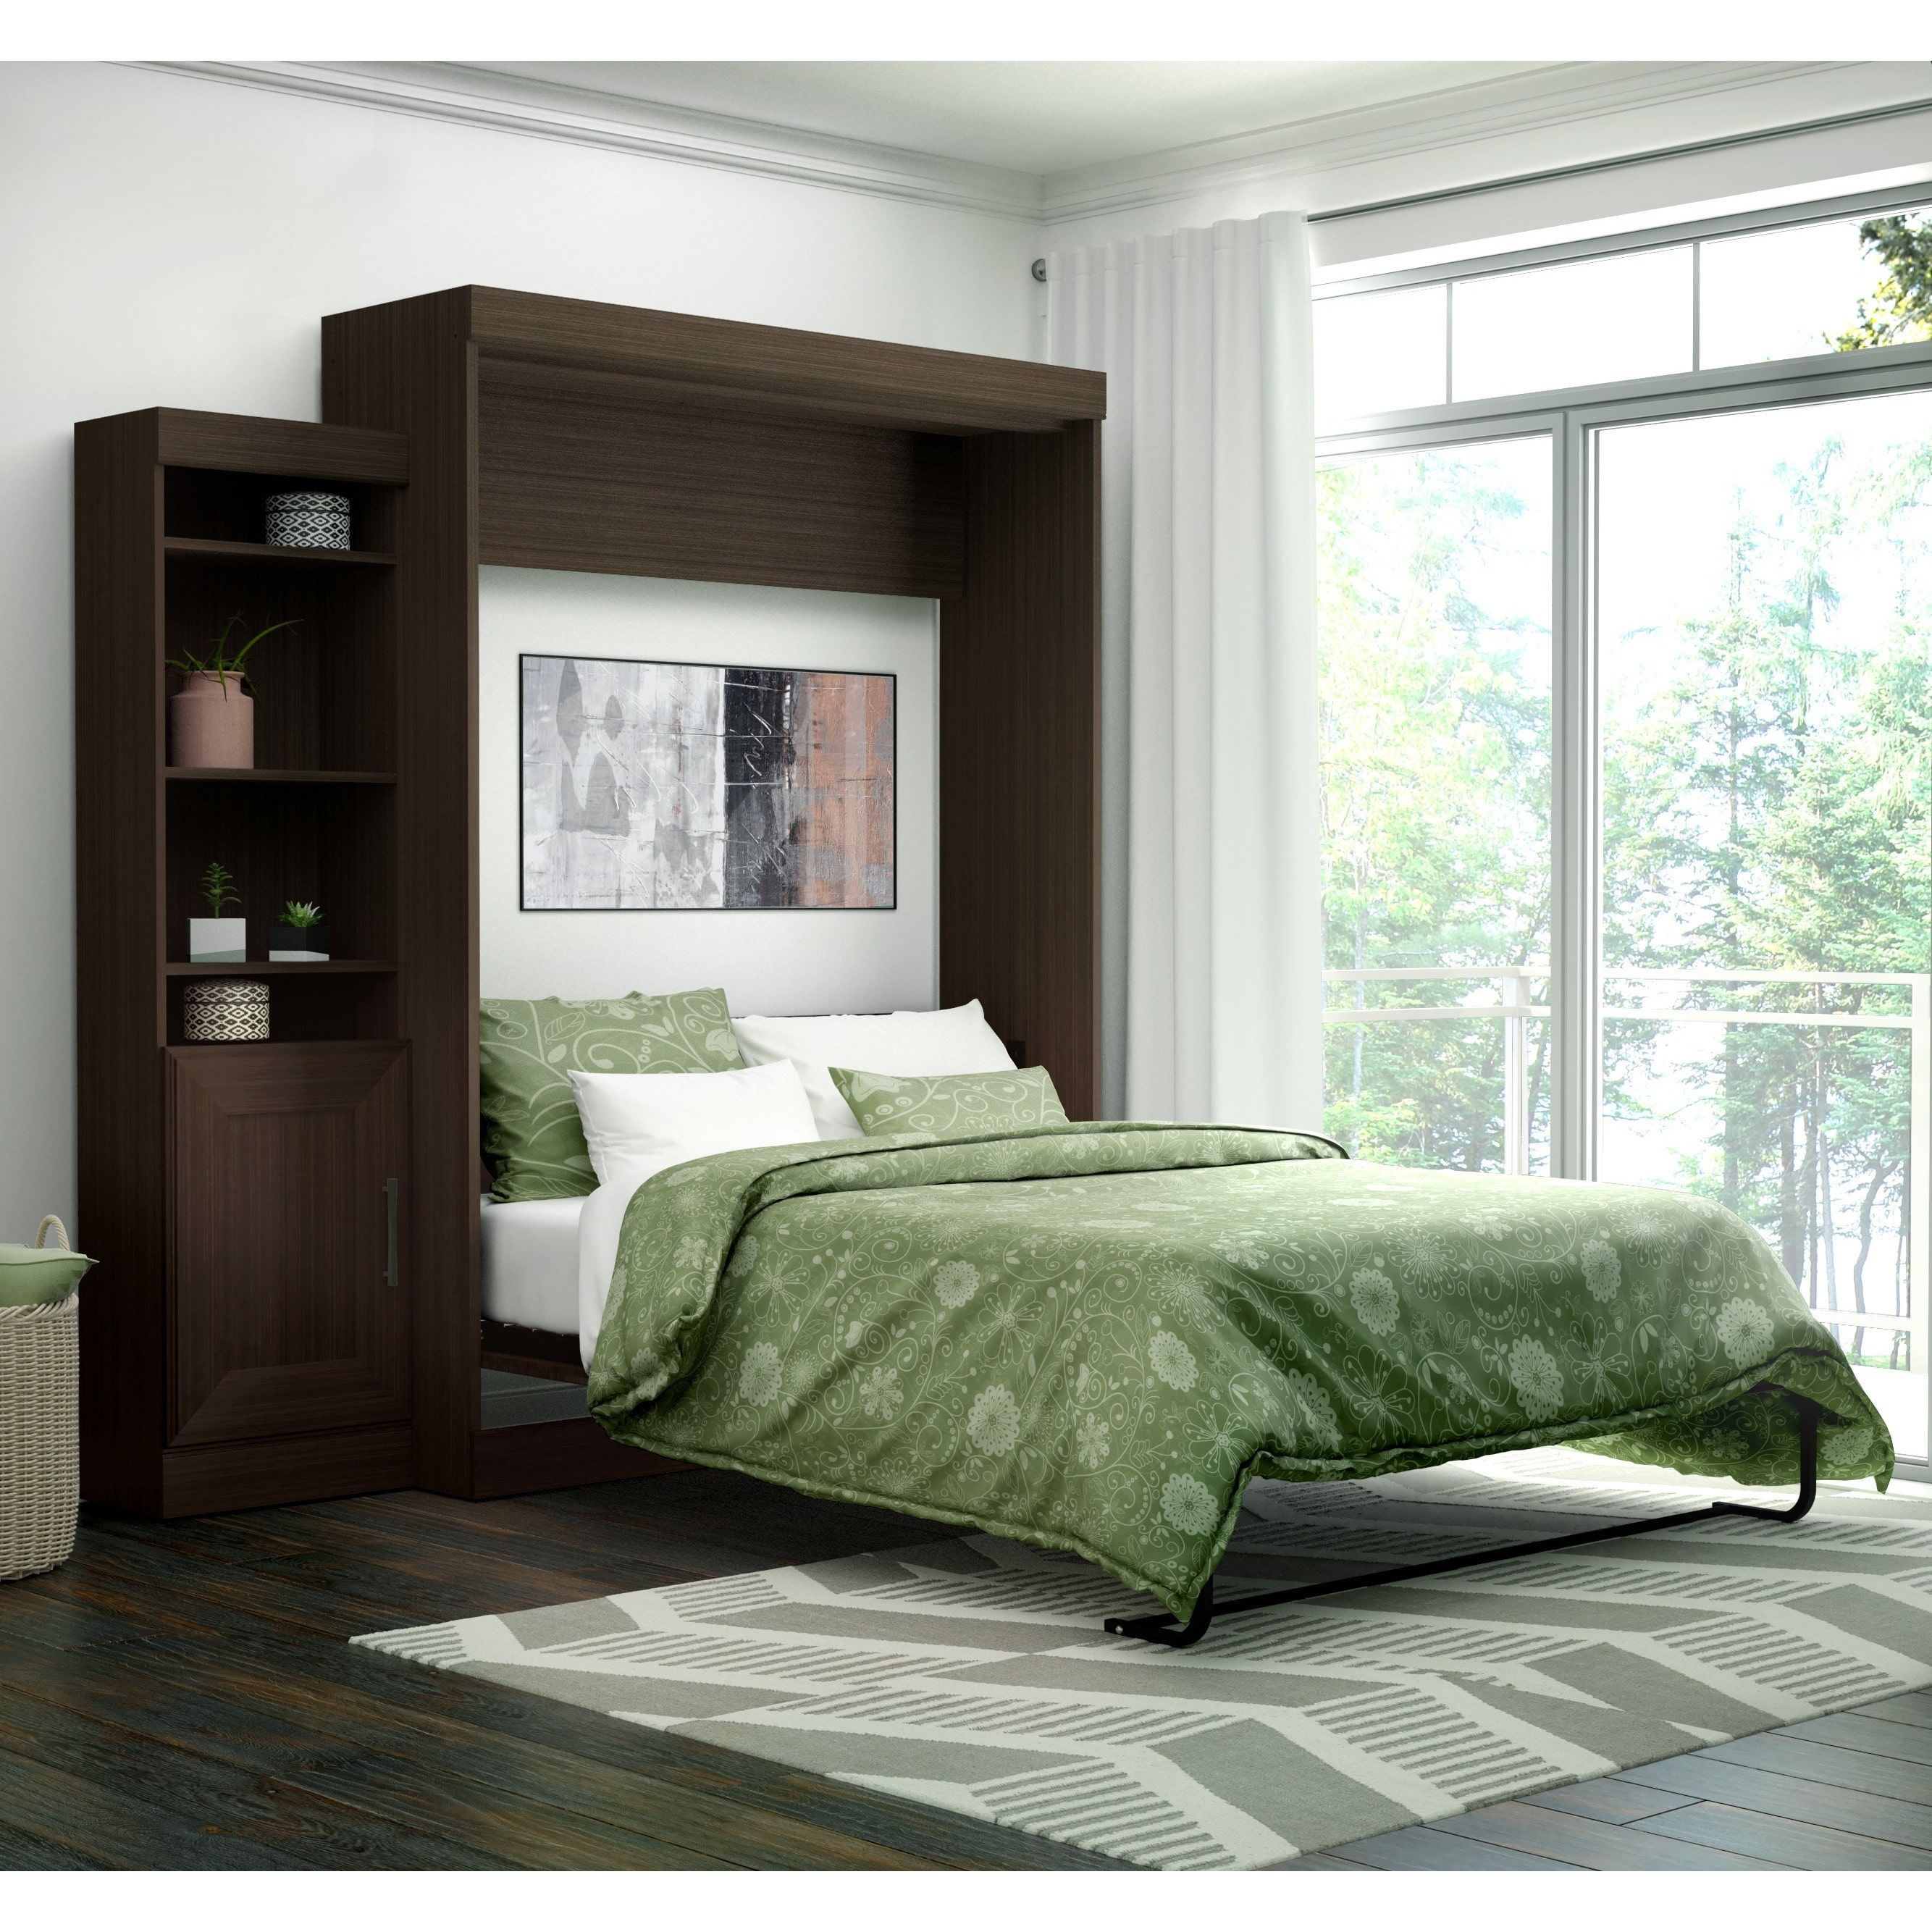 Edge by bestar queen wall bed with 21 inch storage unit and door edge by bestar queen wall bed with 21 inch storage unit and door amipublicfo Image collections